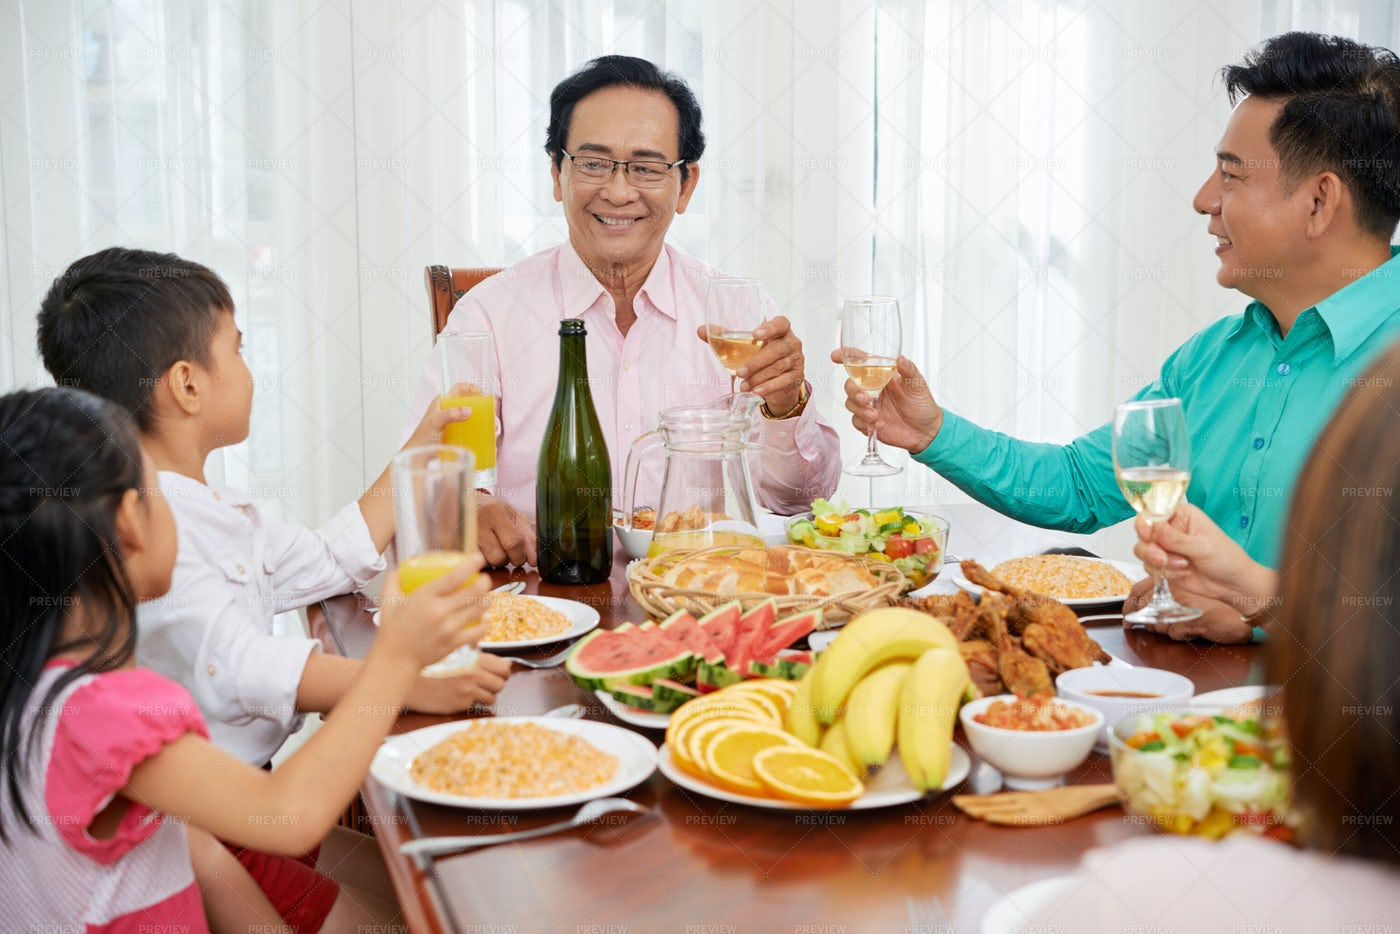 Cheerful Family With Children Toasting: Stock Photos